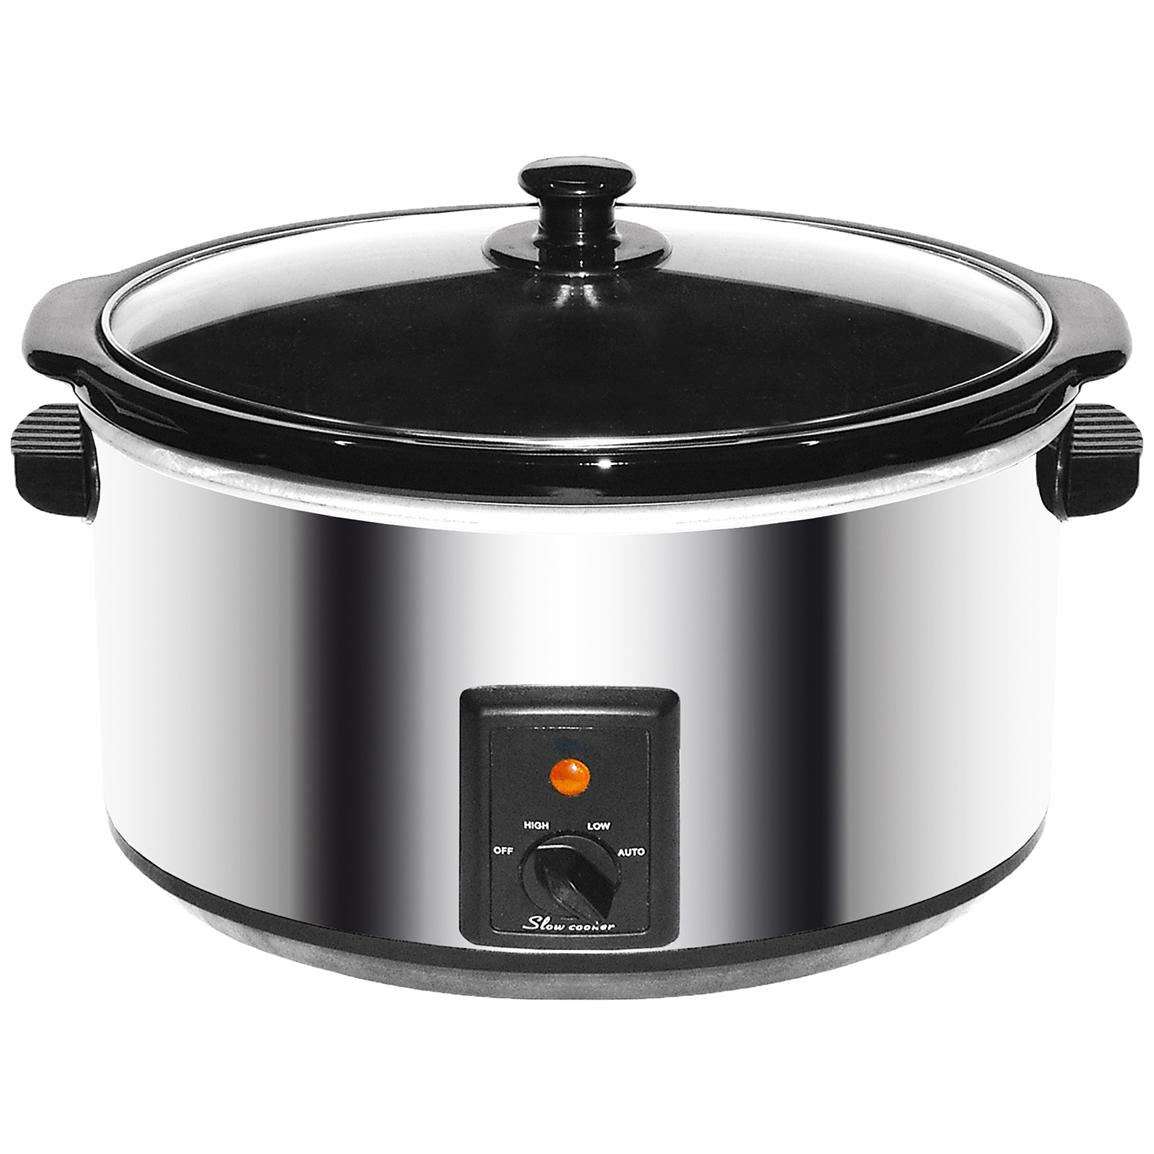 8-quart Slow Cooker, Stainless Steel